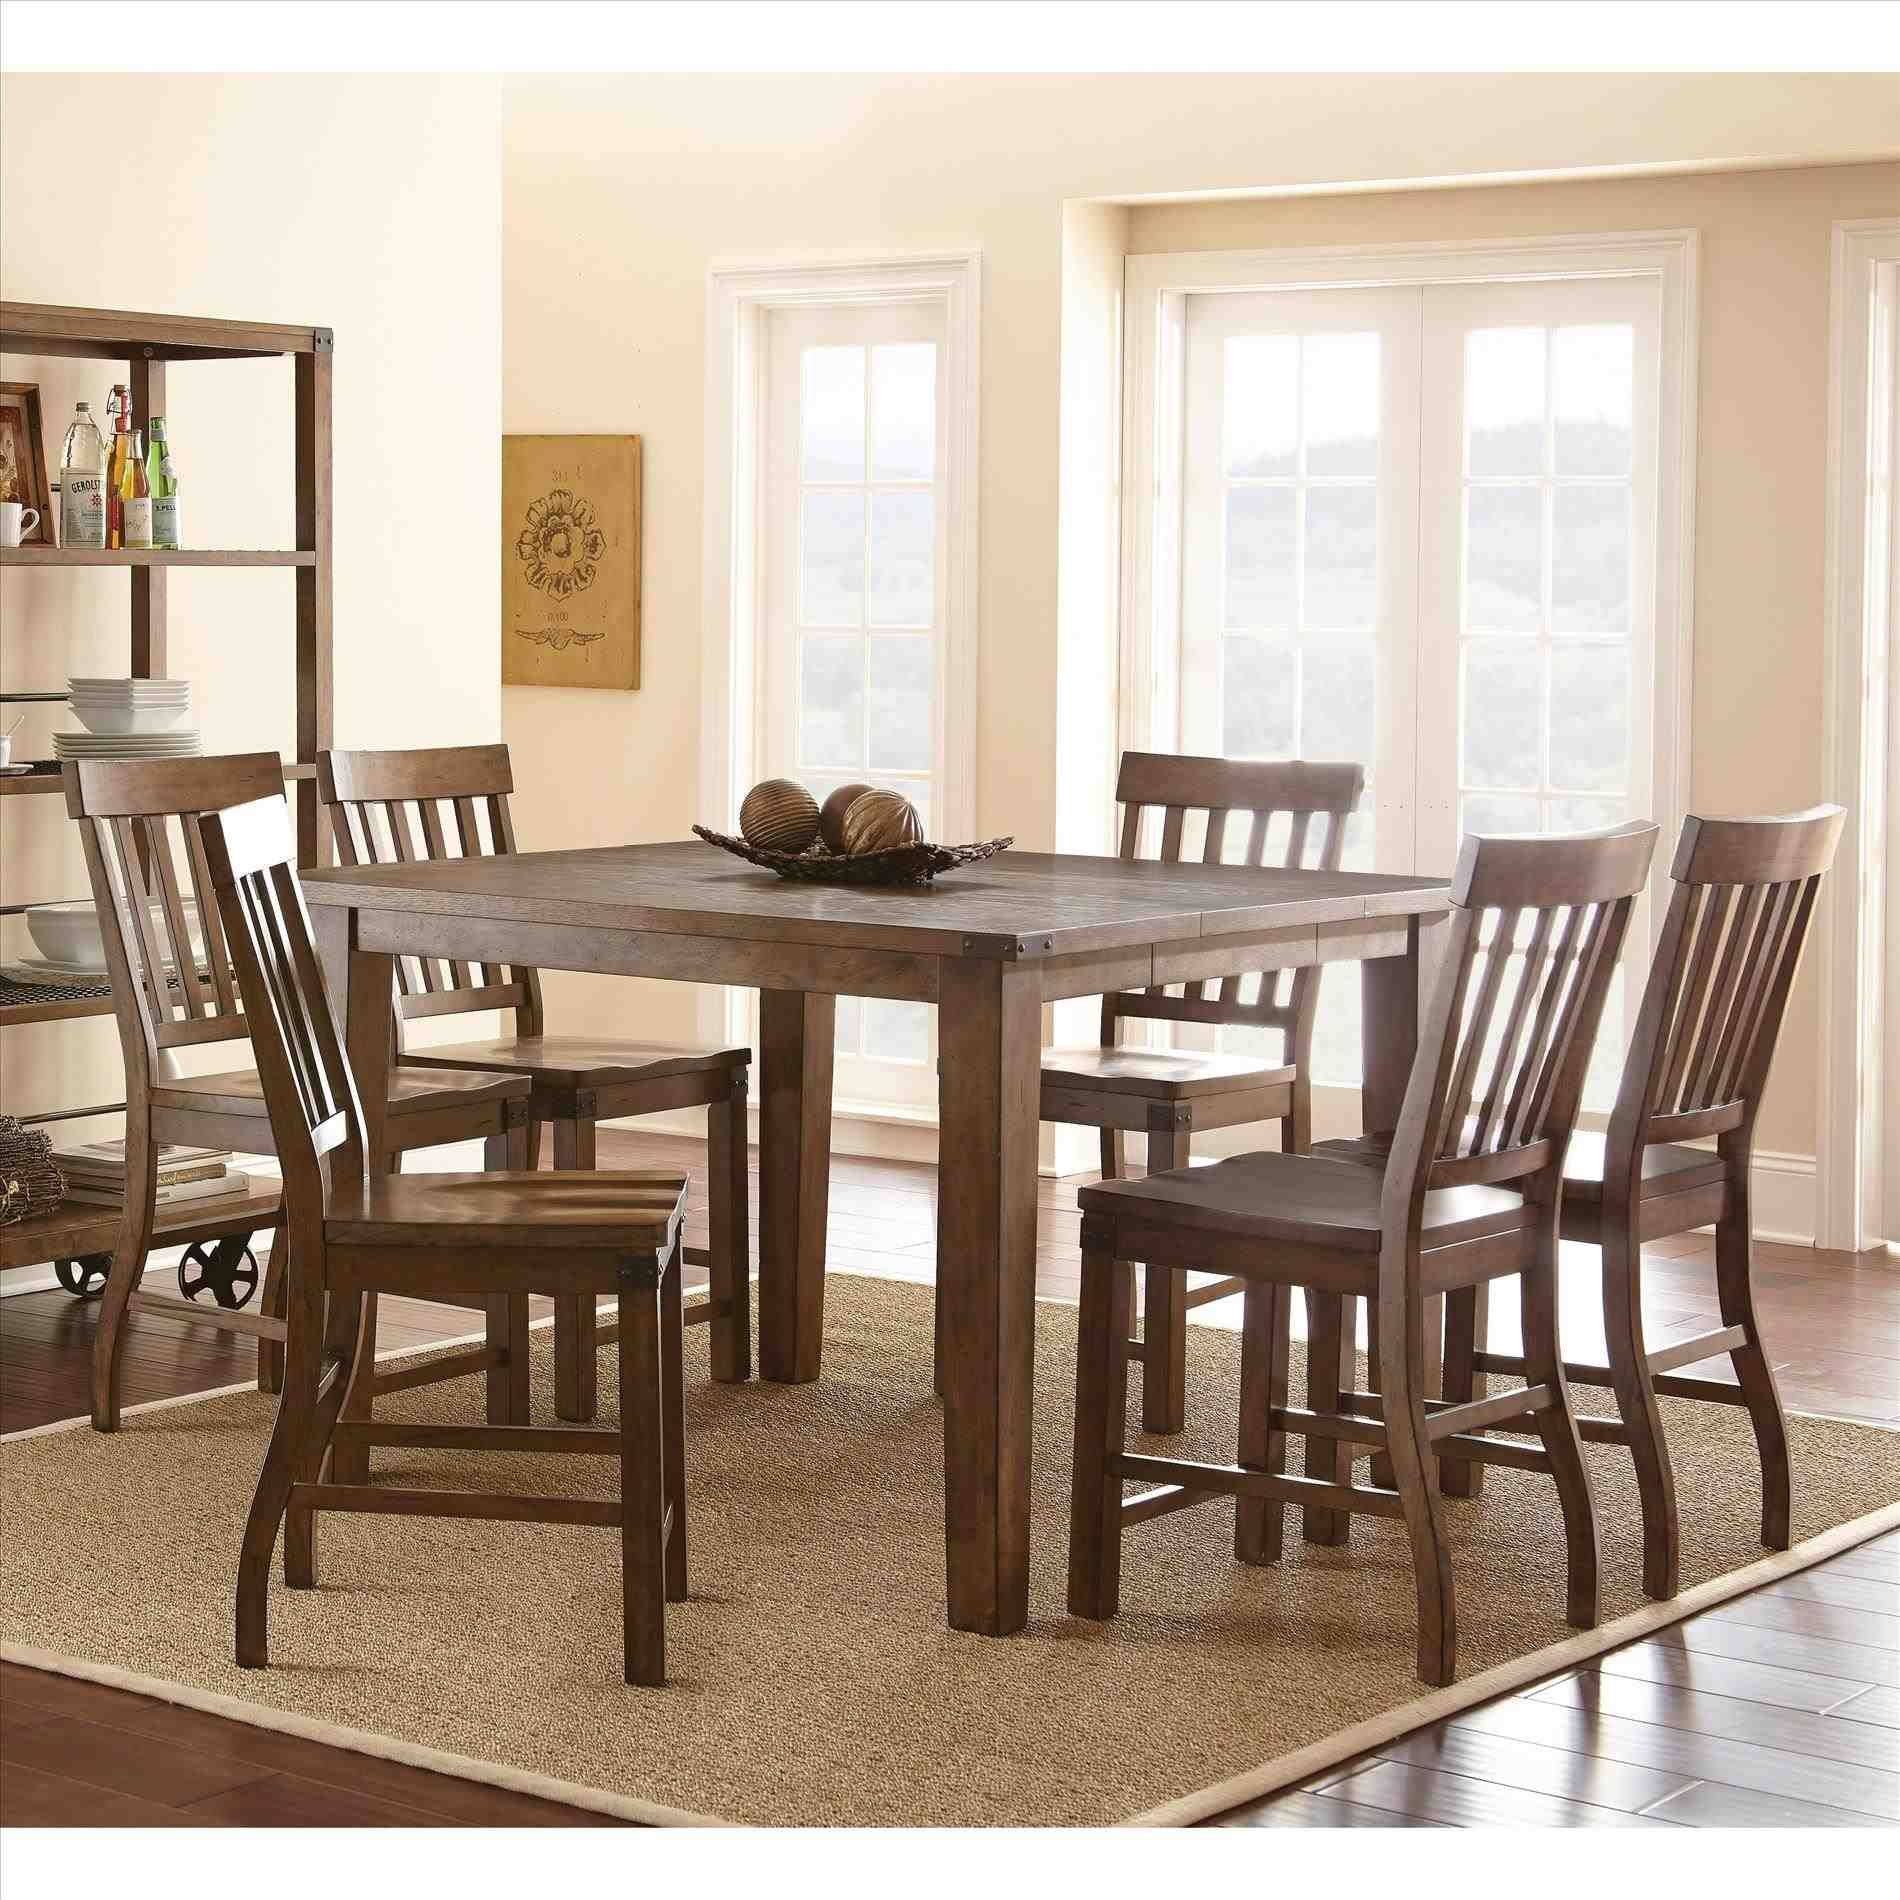 New Post Tall Dining Table Walmart  Decors Ideas  Pinterest Glamorous Dining Room Tables Walmart Design Ideas